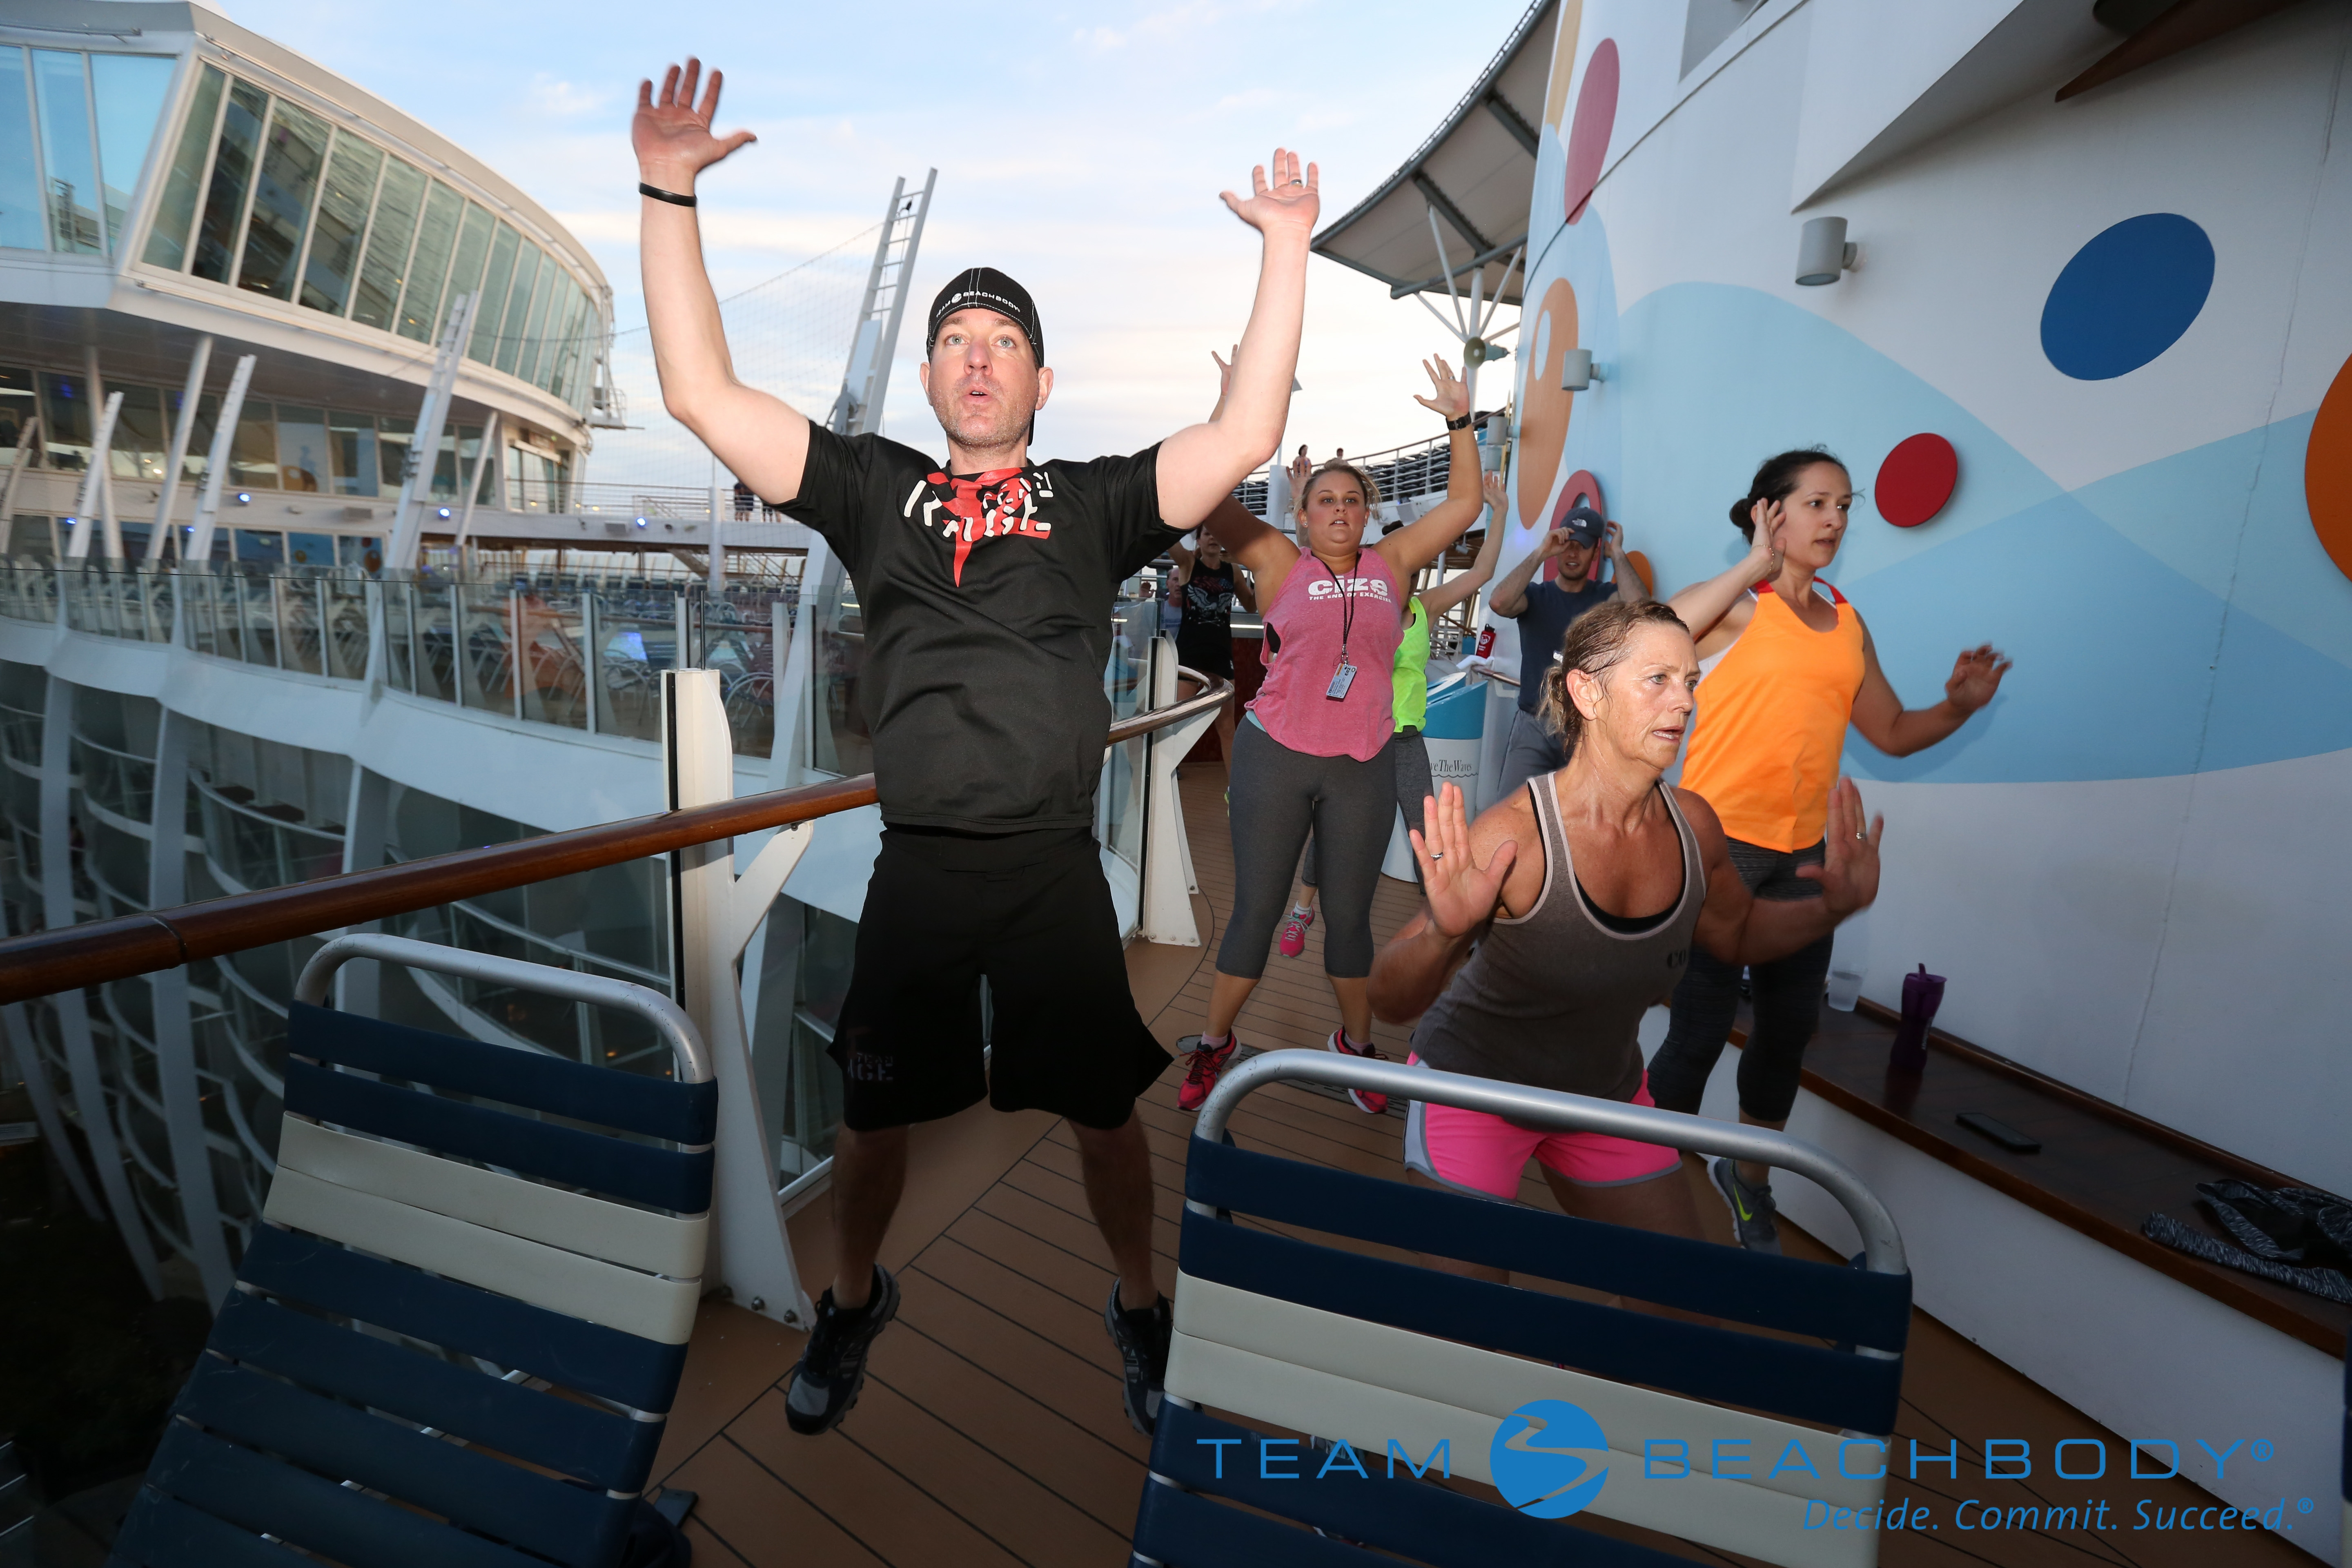 Mike 22 Minute Hard Corps Workout S.S. Beachbody Cruise